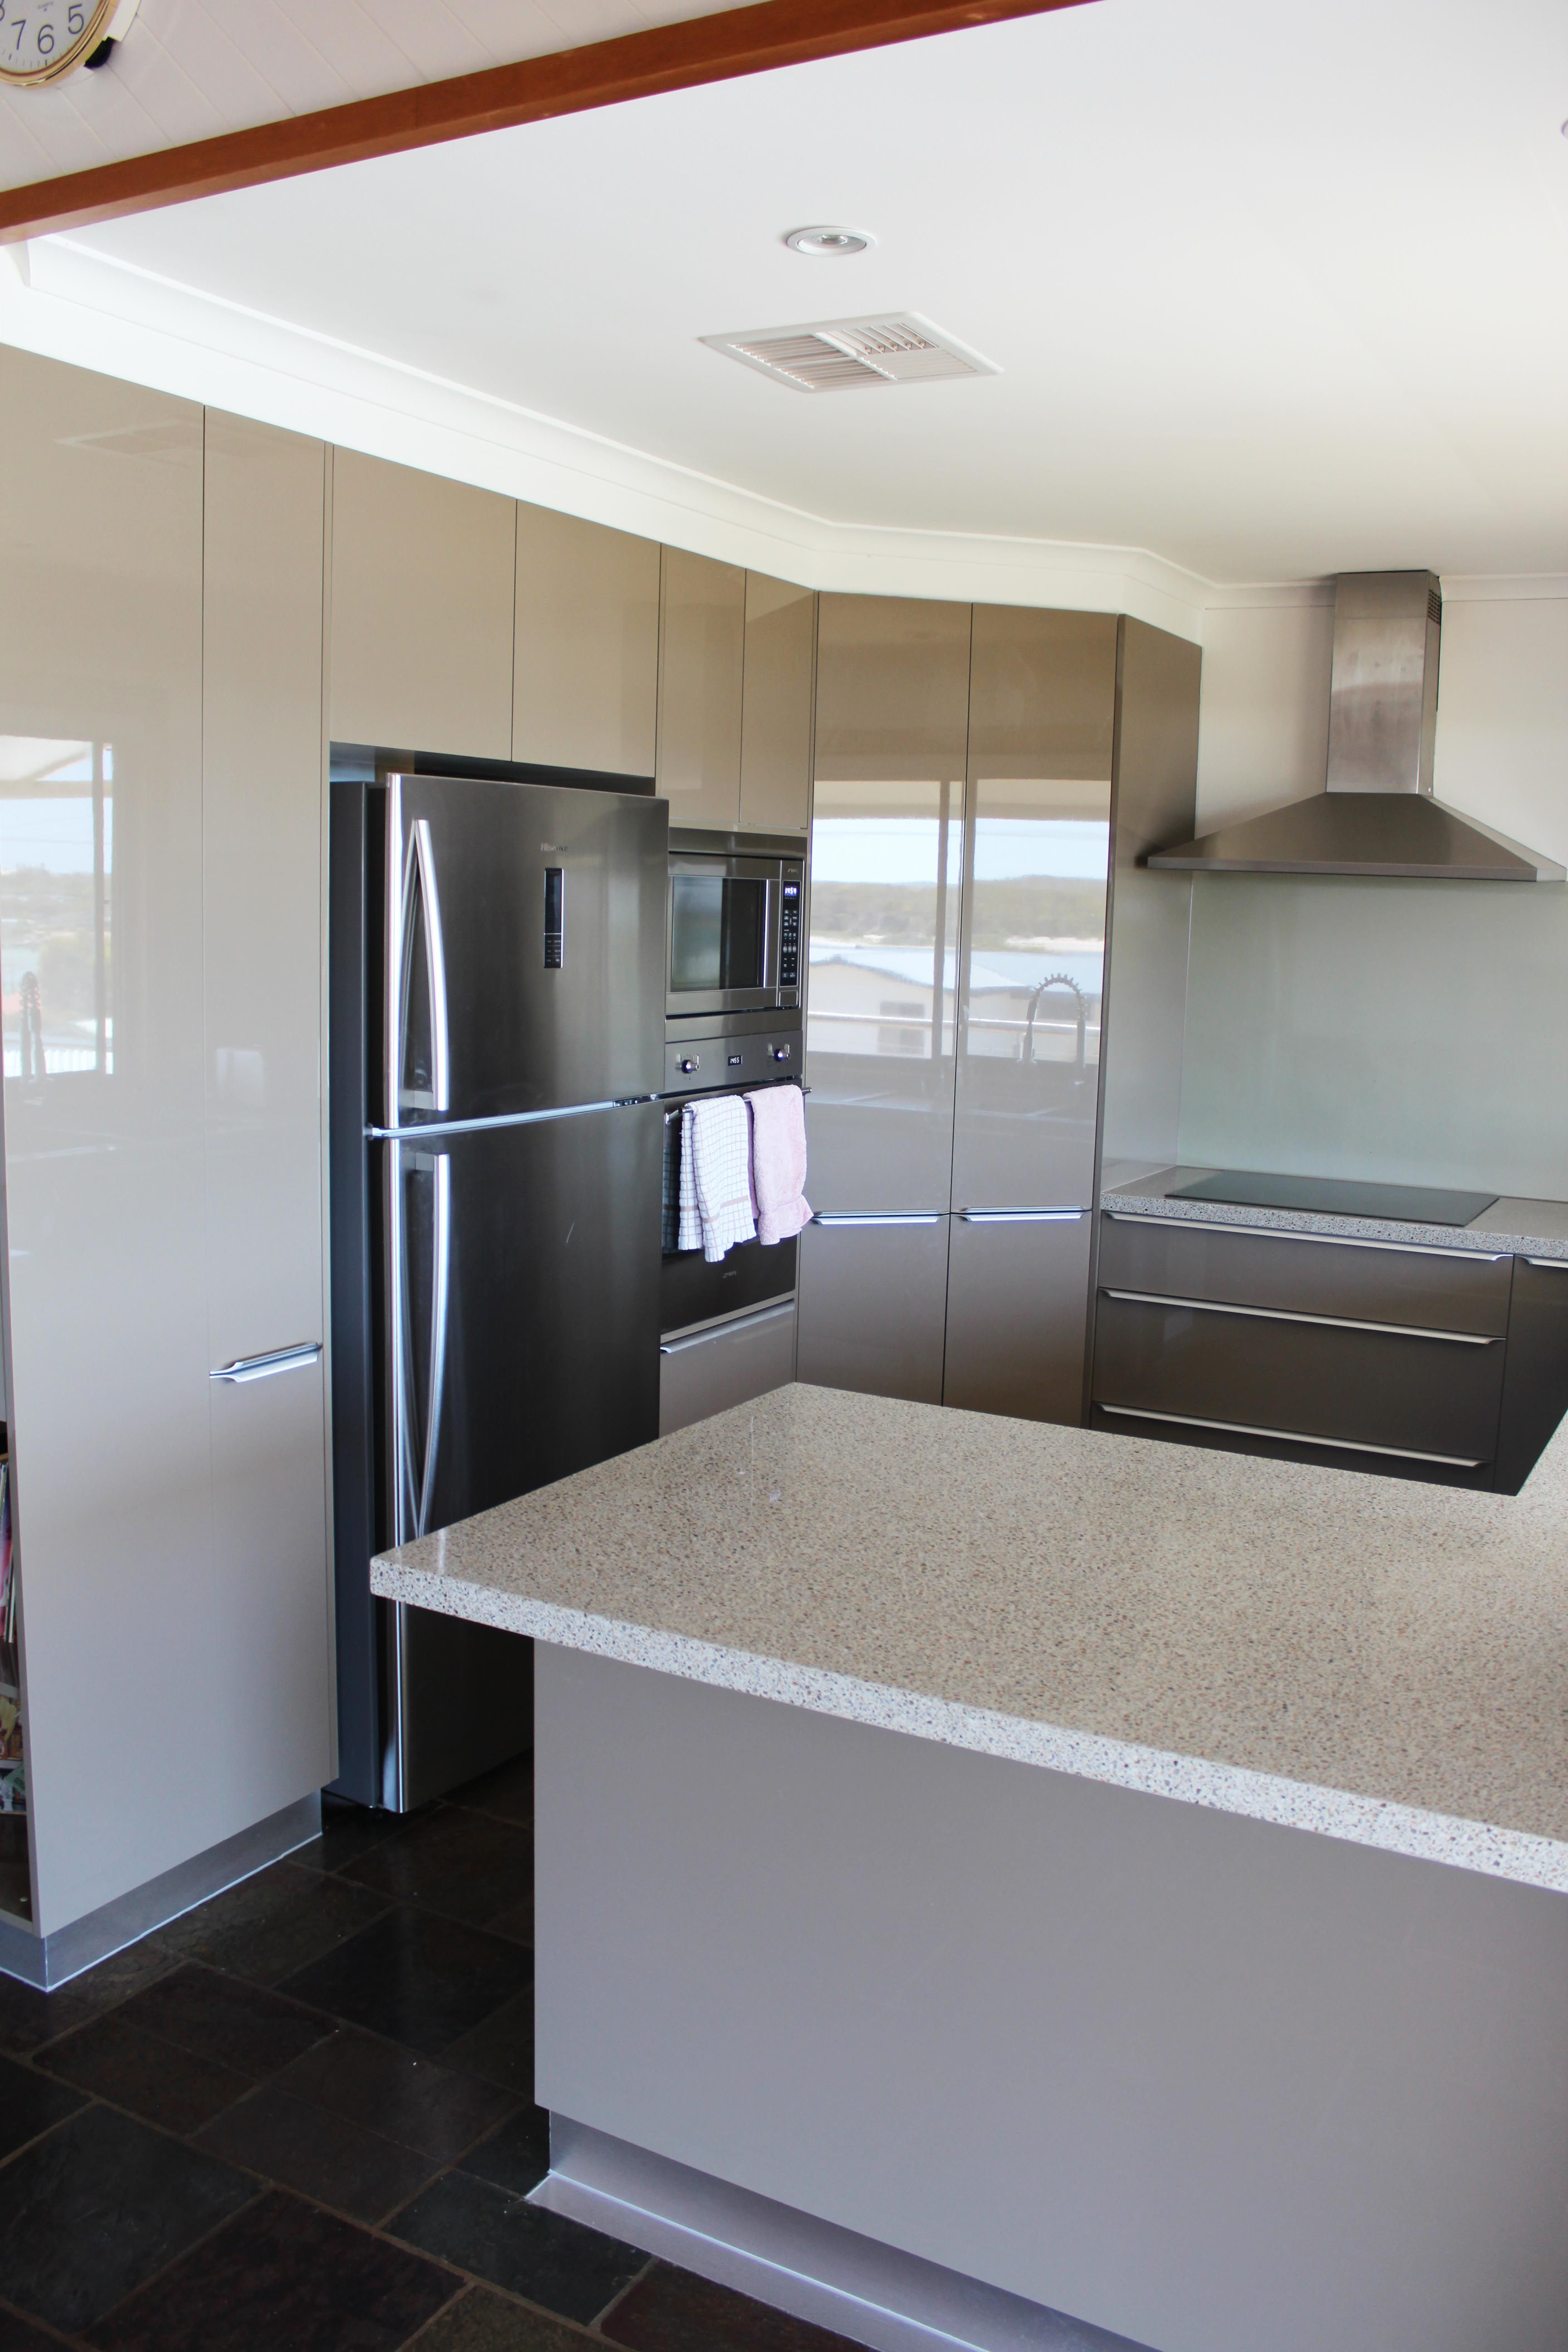 Benchtops Trend Surfaces Quot King Ivory Quot Panels Polytec Quot Caraway Createc Gloss Quot Splashback